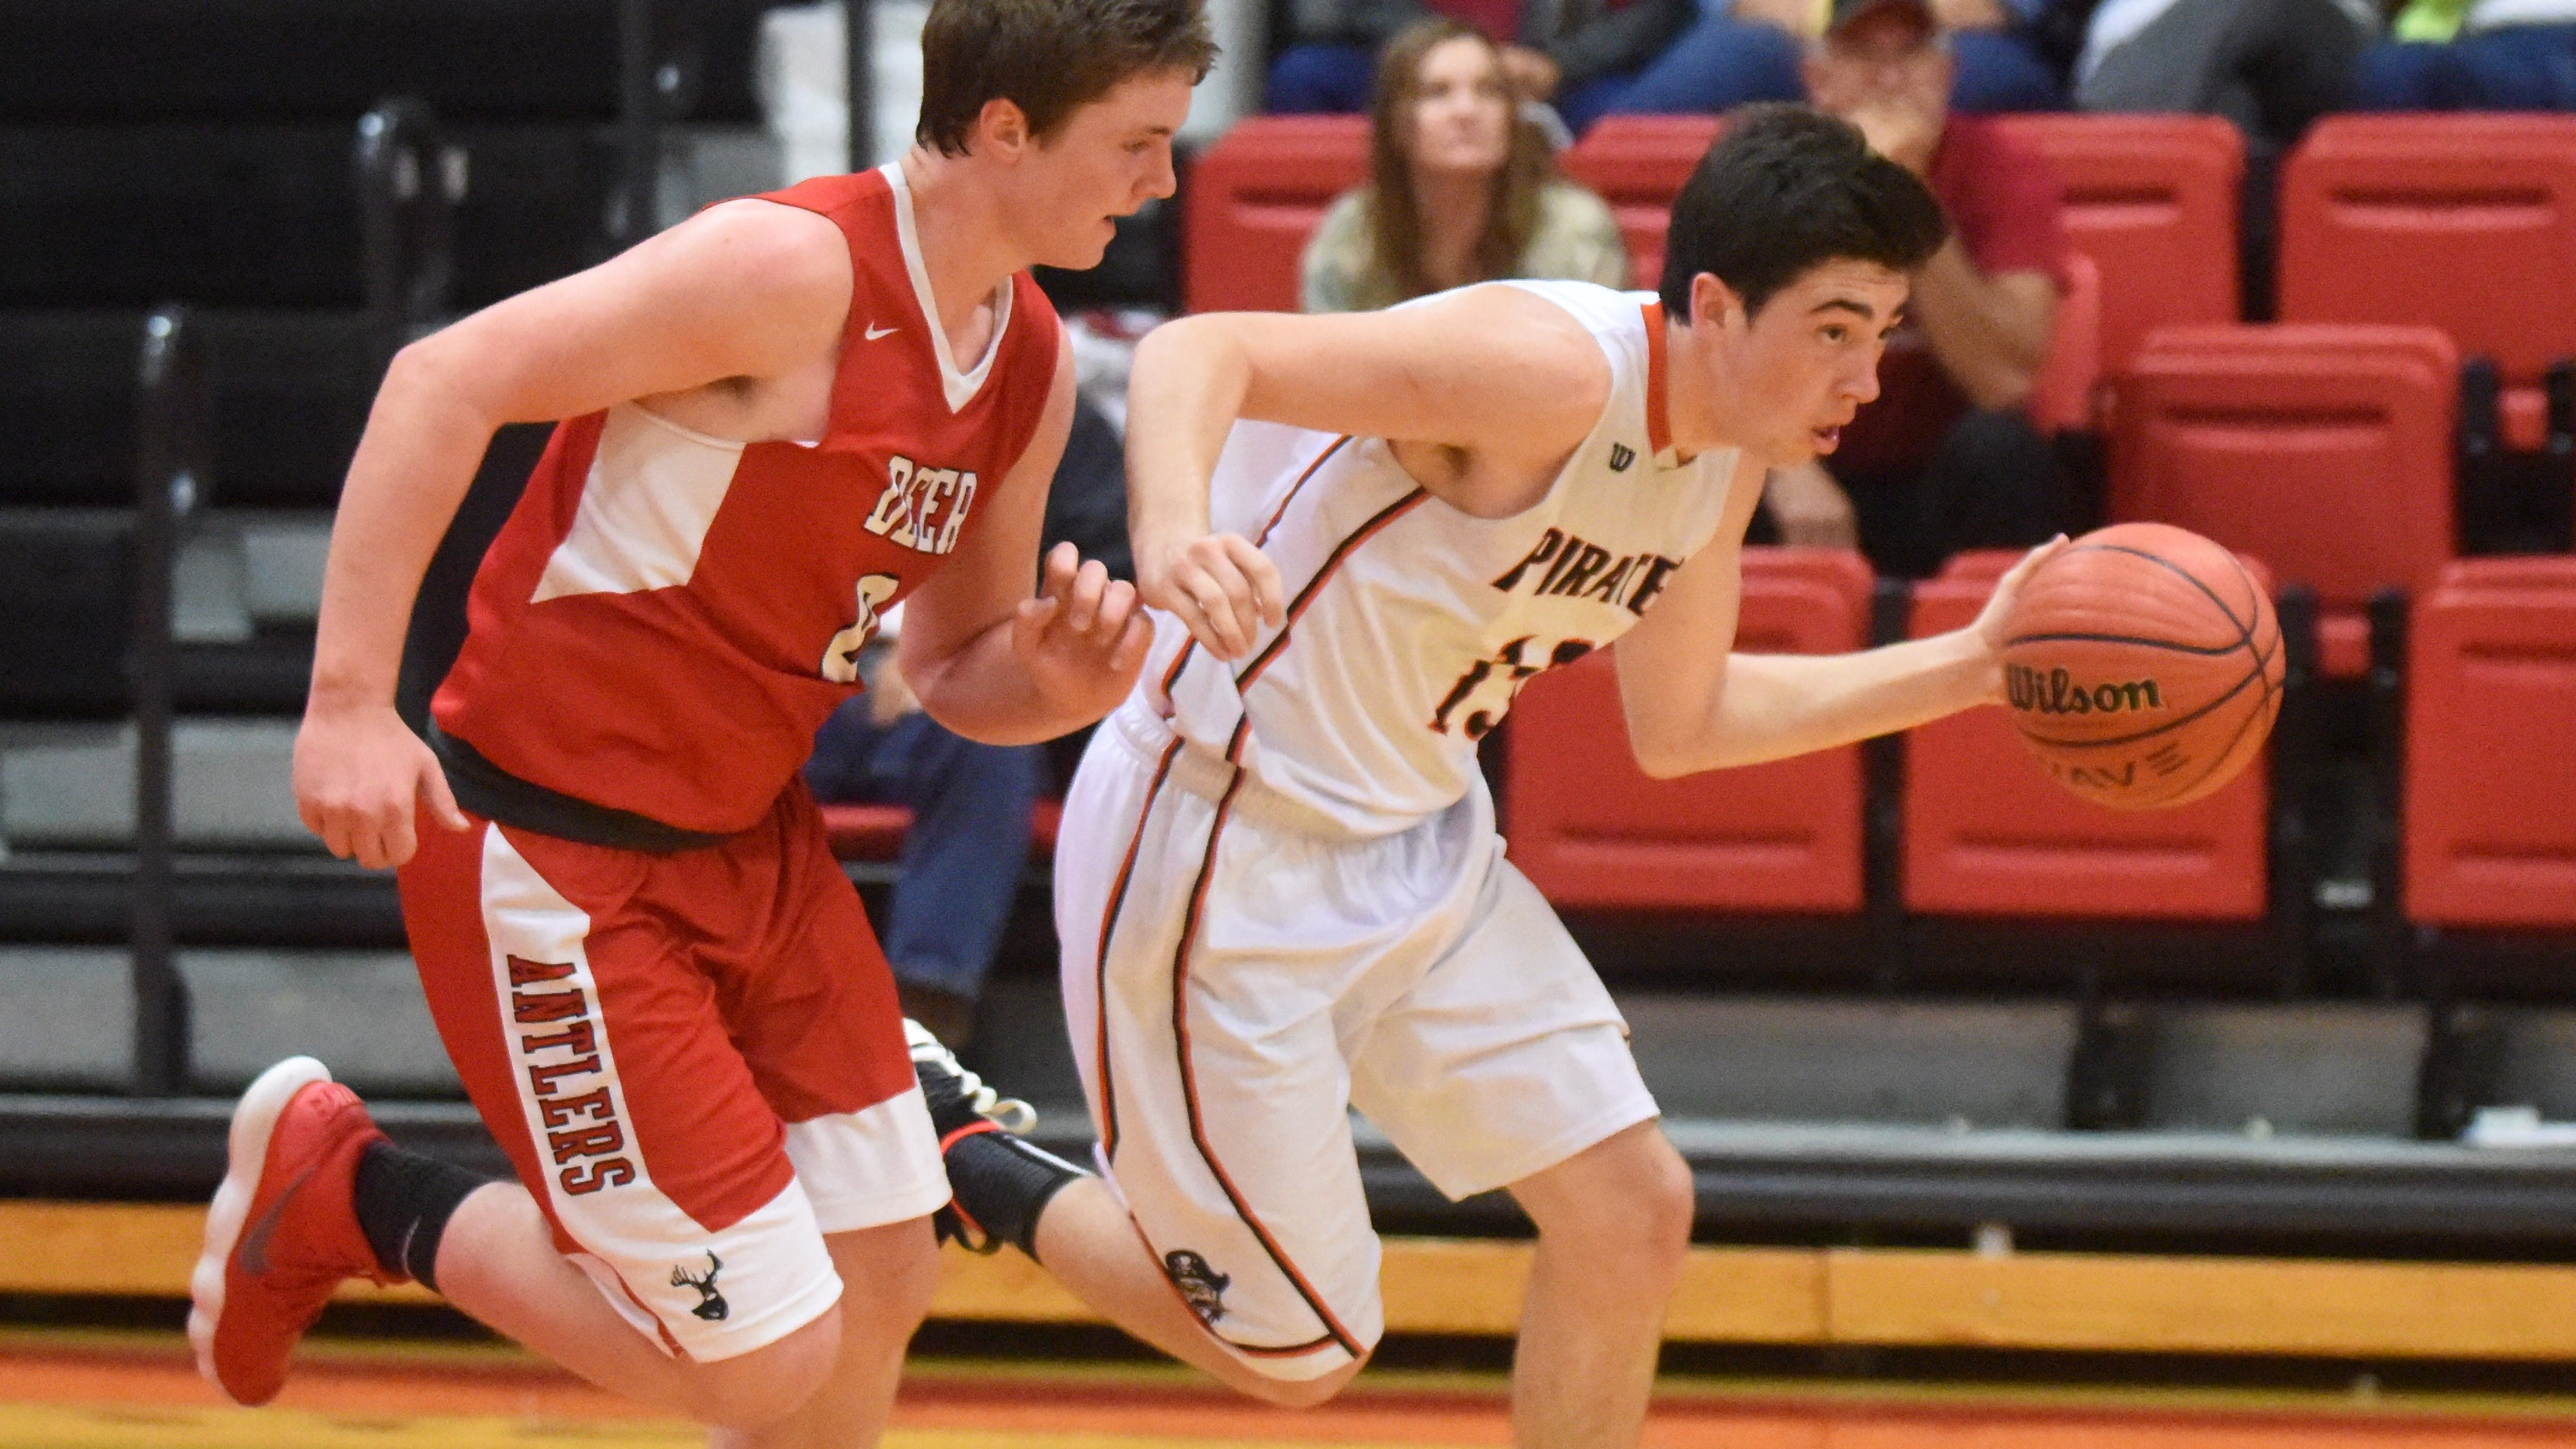 Calico Rock's Connor Sanders dribbles upcourt while guarded by Deer's Avery Young on Thursday night at Norfork.